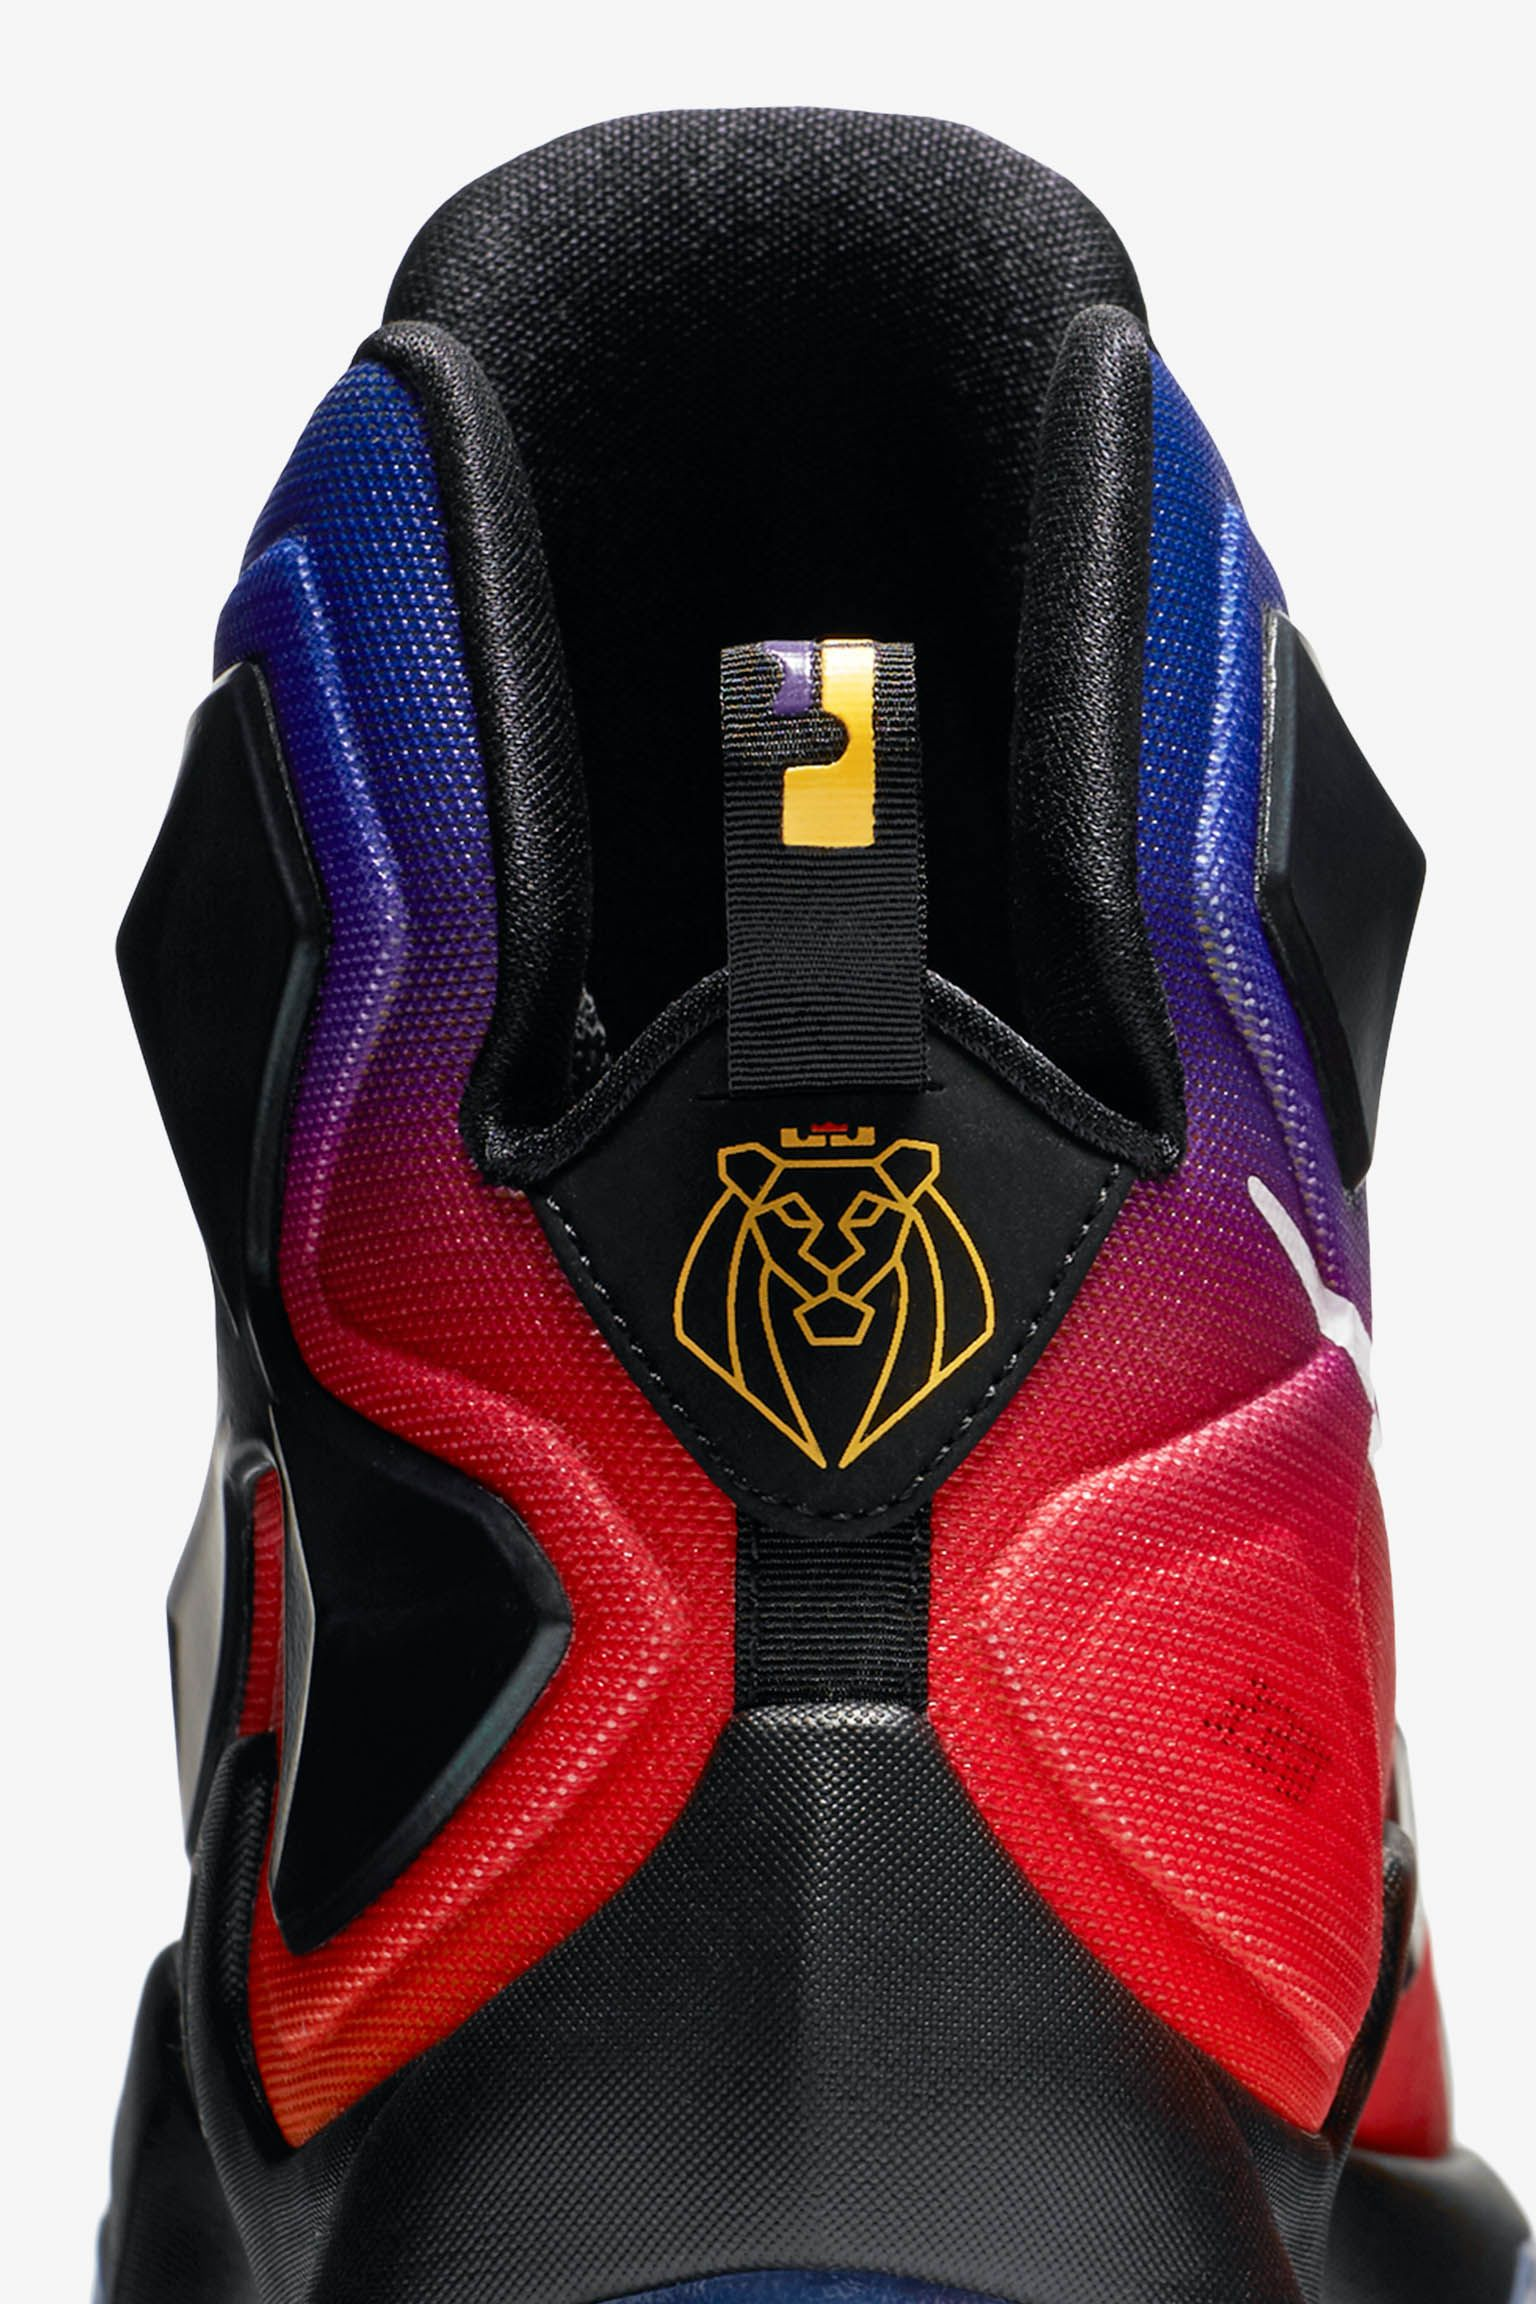 Nike LeBron 13 Doernbecher 'Laser Orange & Court Purple' Release Date